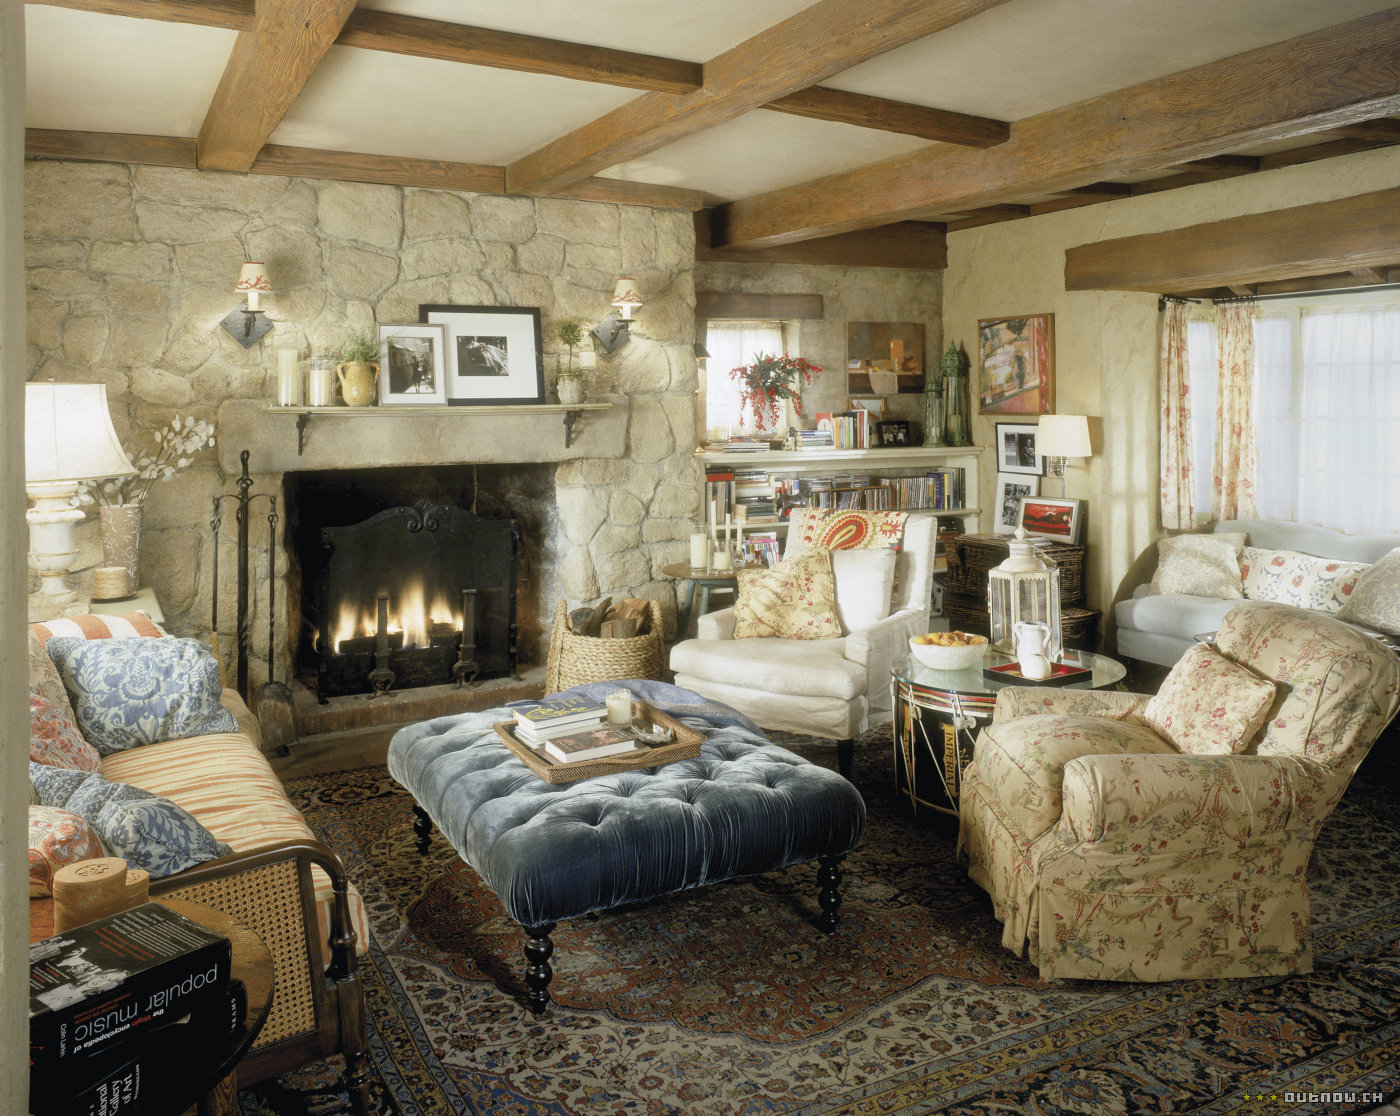 Could these chairs work together pics fireplace ralph lauren photos living room home - Living room pics ...